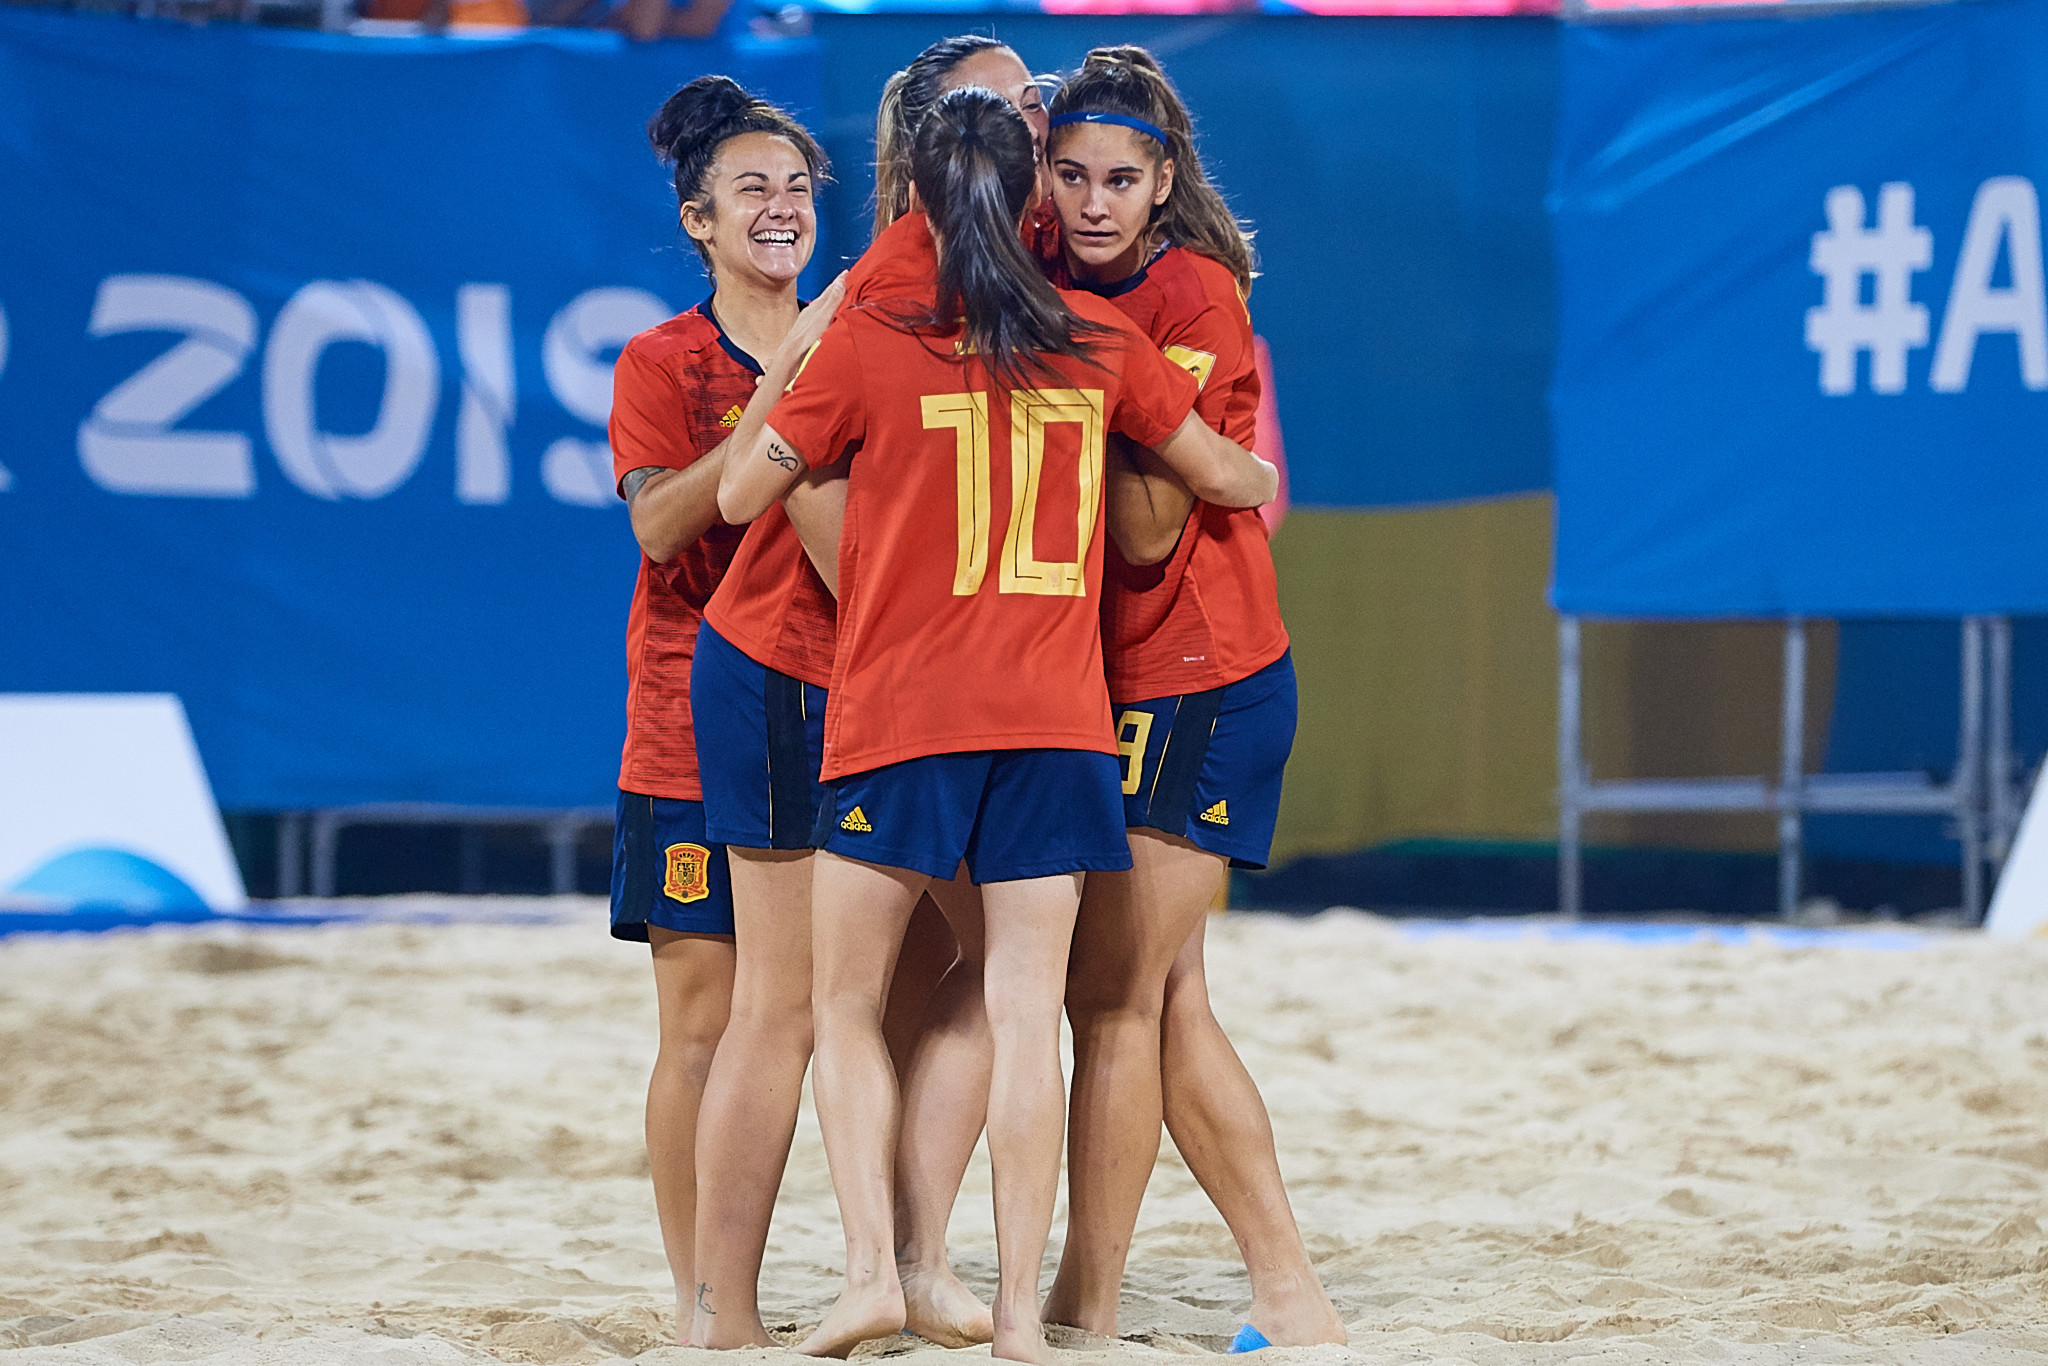 Spain edged Britain to win the women's beach soccer gold ©ANOC